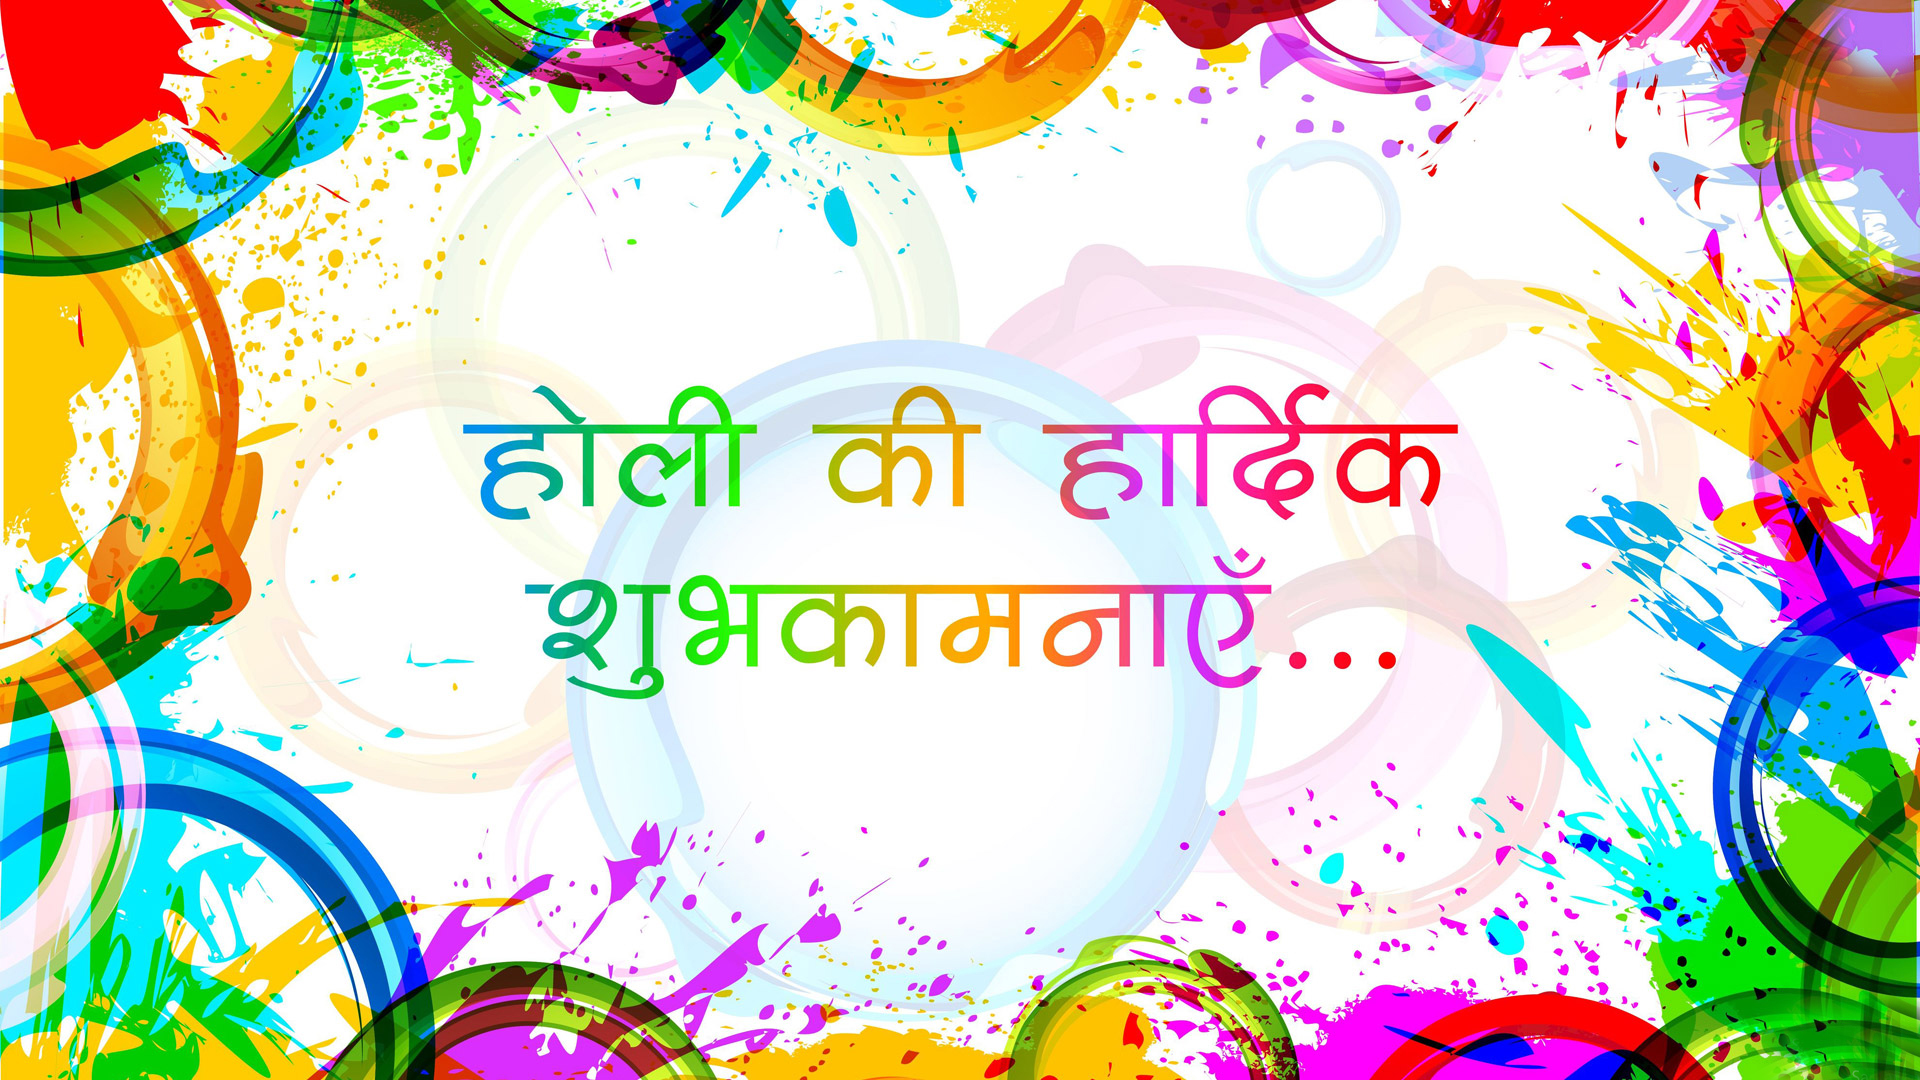 Holi Ki Shubhkamnaye Holi Wishes In Hindi Hd Wallpapers 1080p